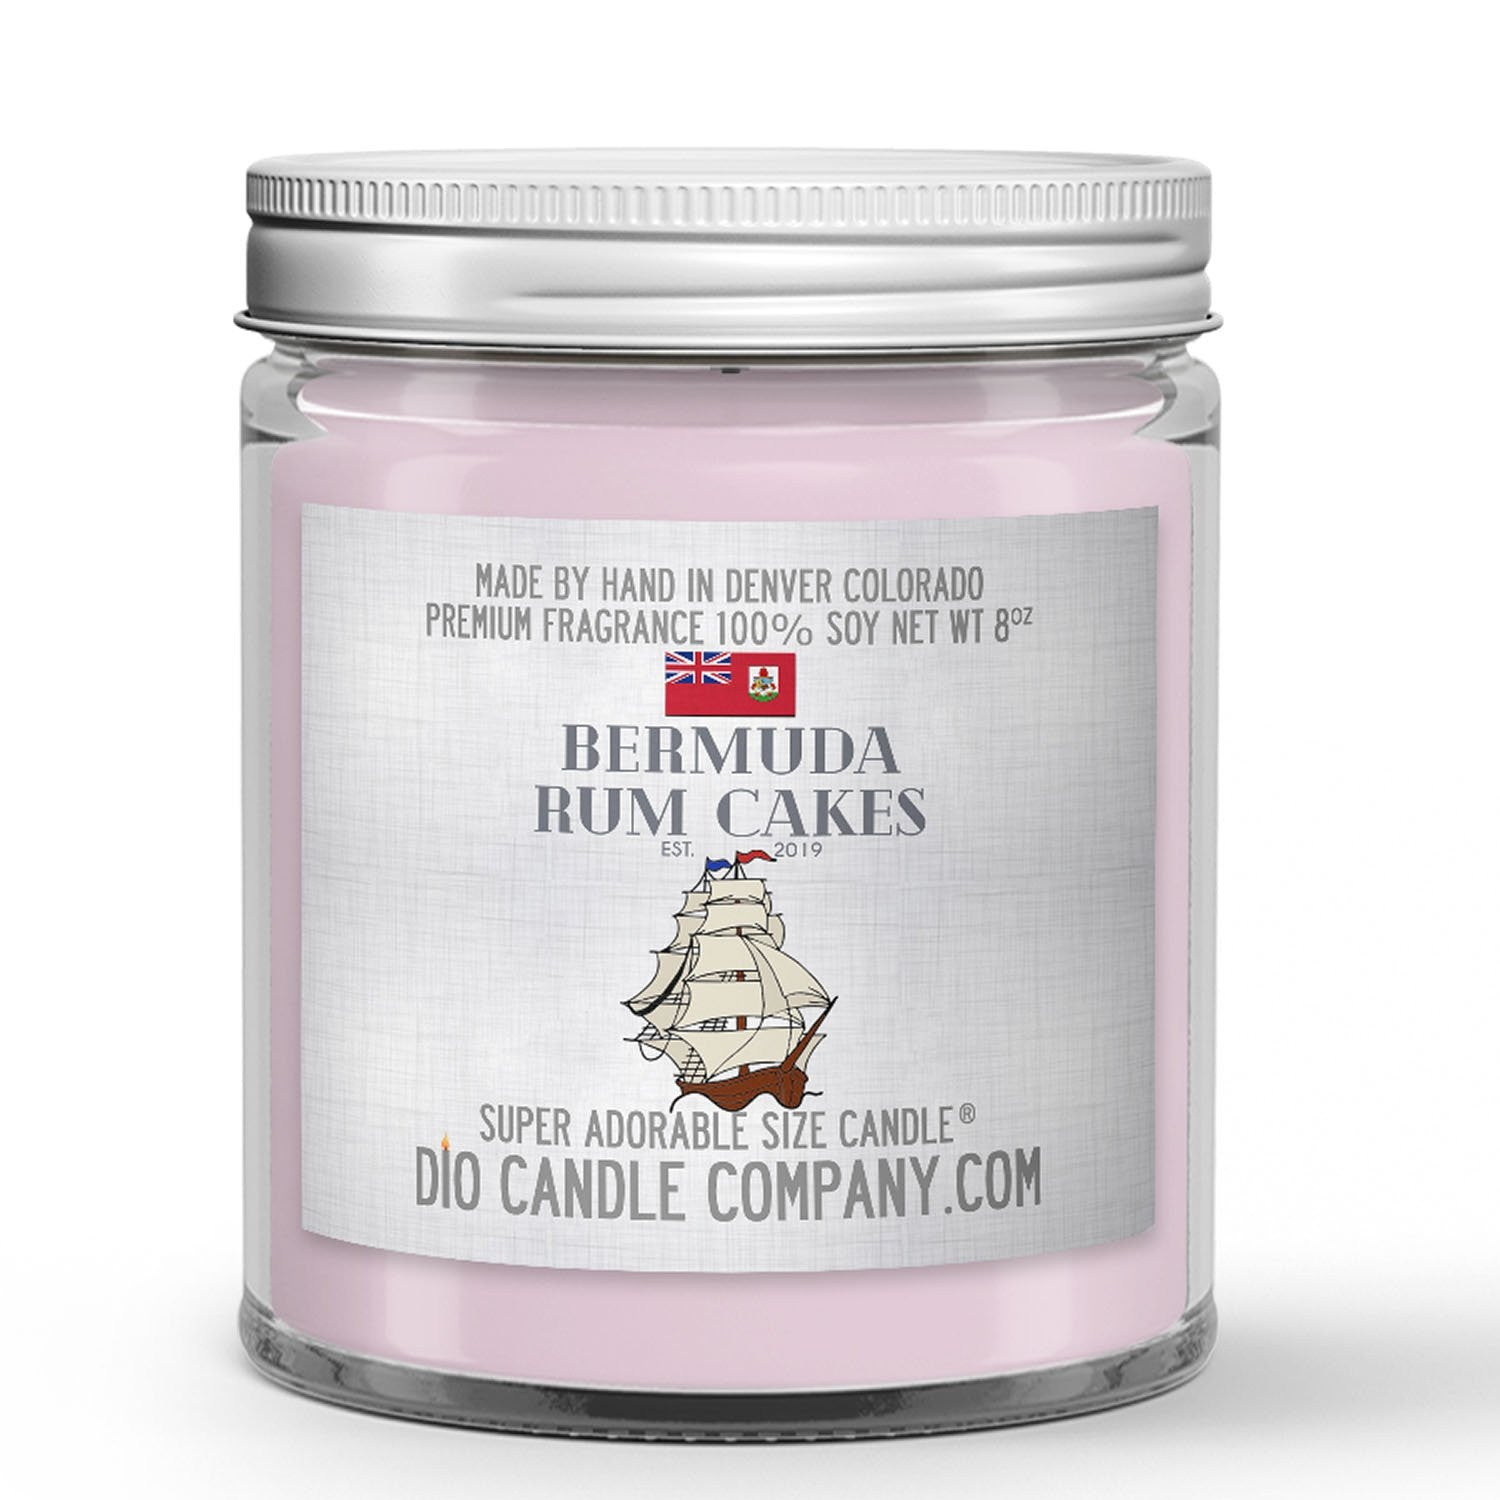 Bermuda Rum Cakes Candle - Black Seal Rum - Royal Icing - Cake - Sea Salt - 8oz Super Adorable Size Candle® - Dio Candle Company